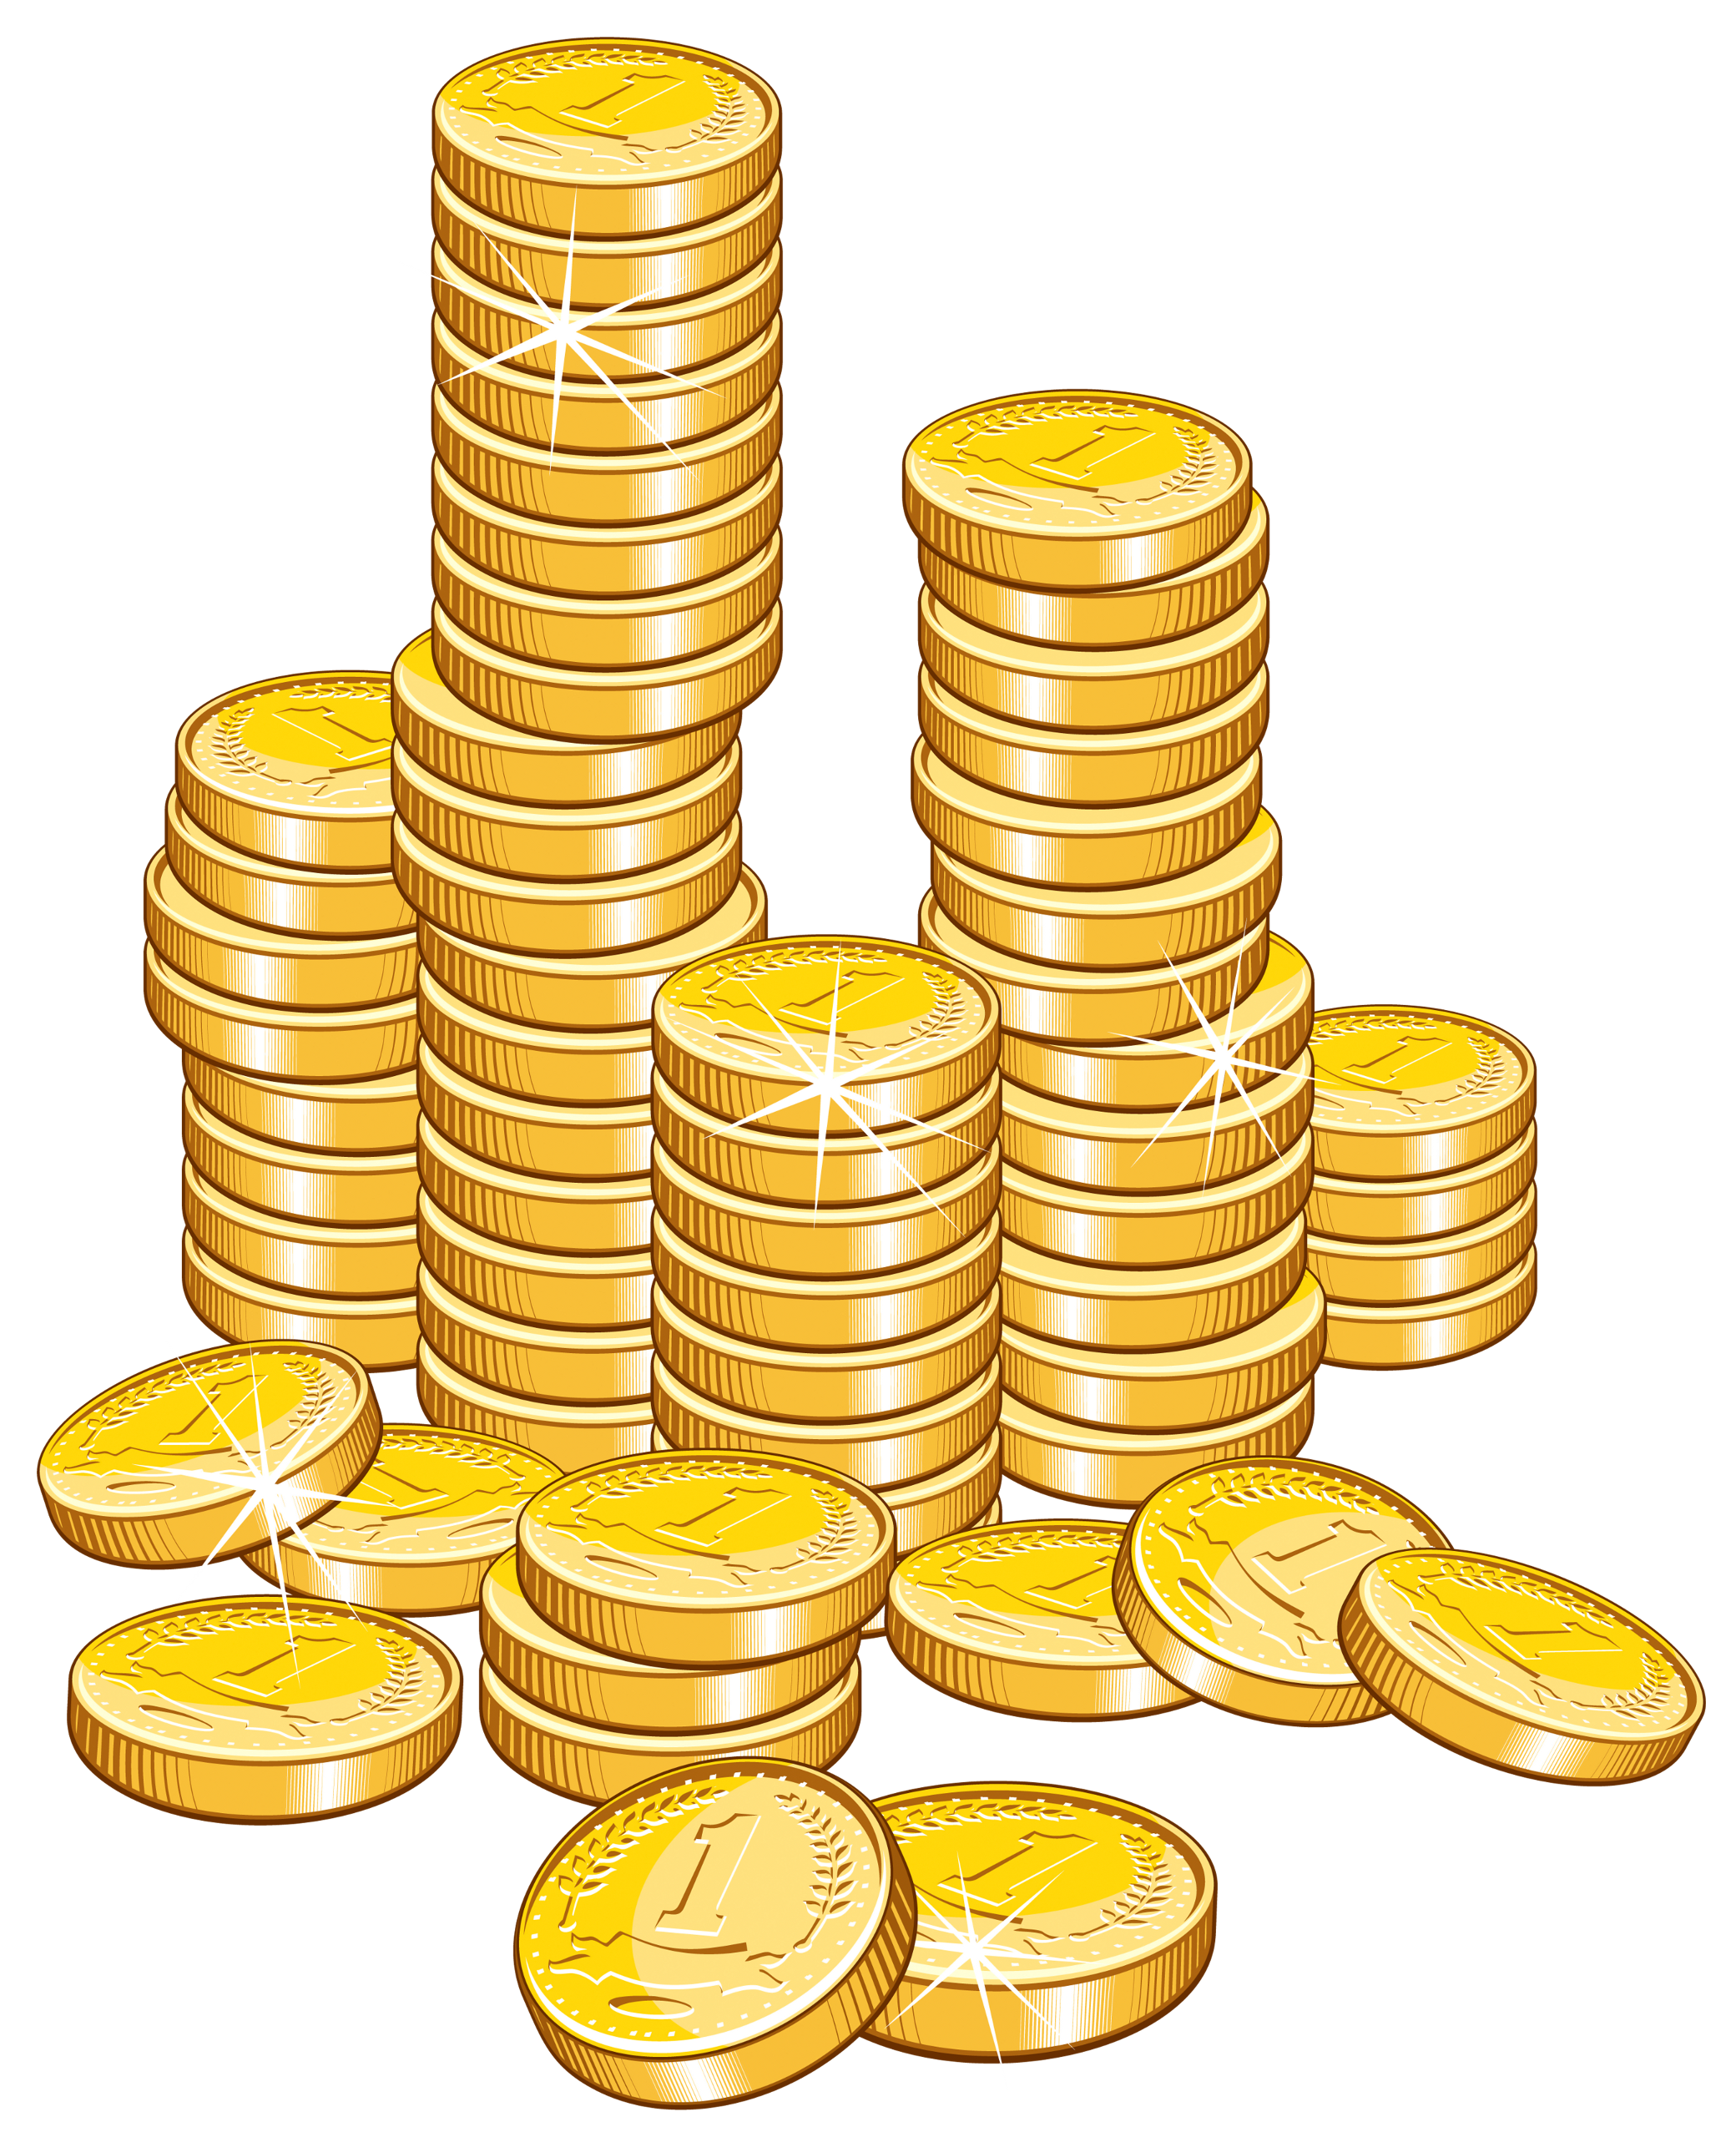 Coins stack png picture. Gold clipart coin